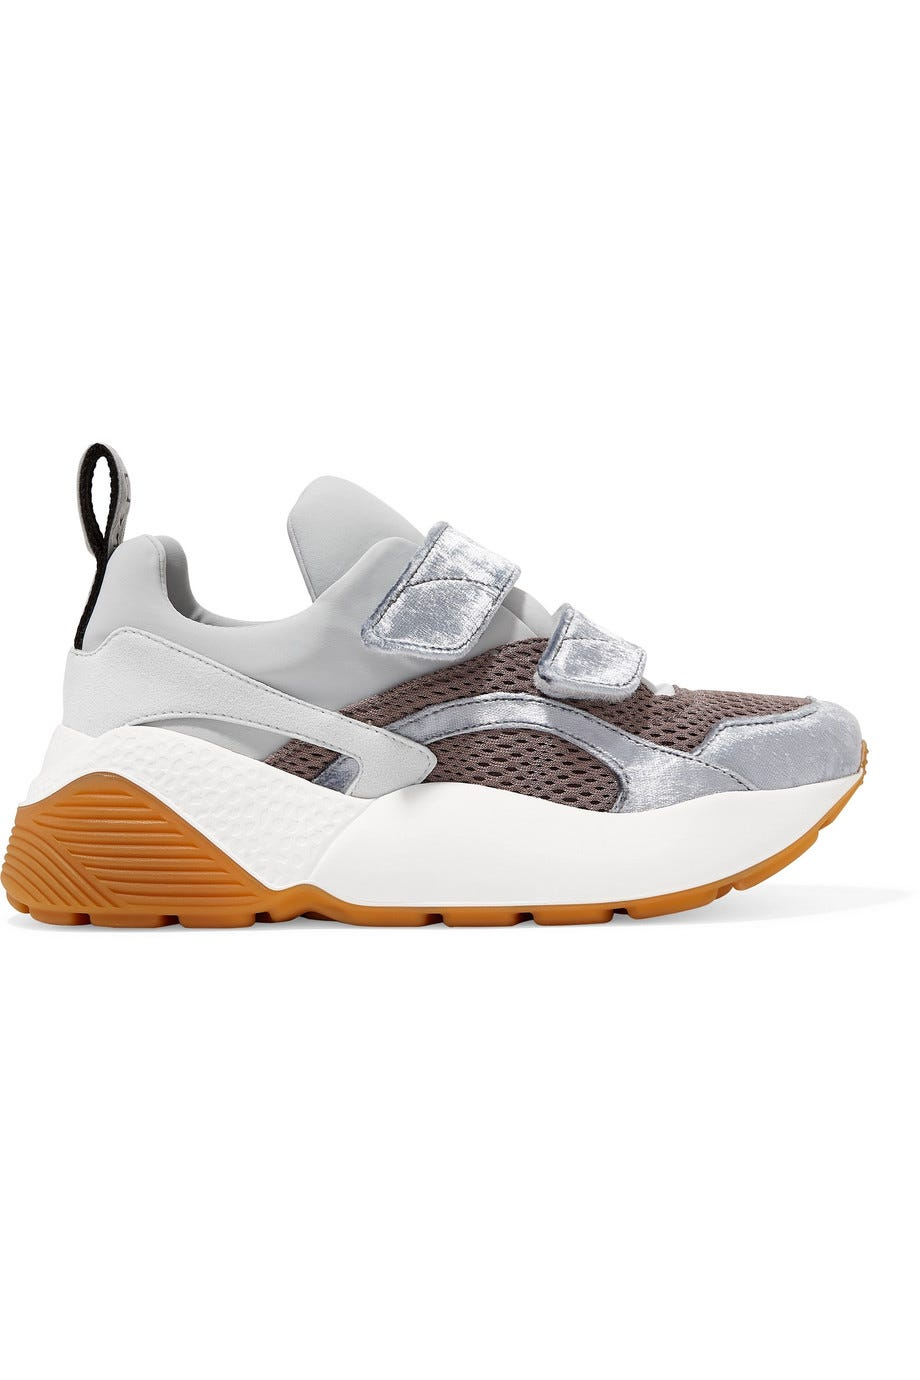 7a4e79f344 Coolest Ugly Dad Sneakers For Women - 2019 Trends